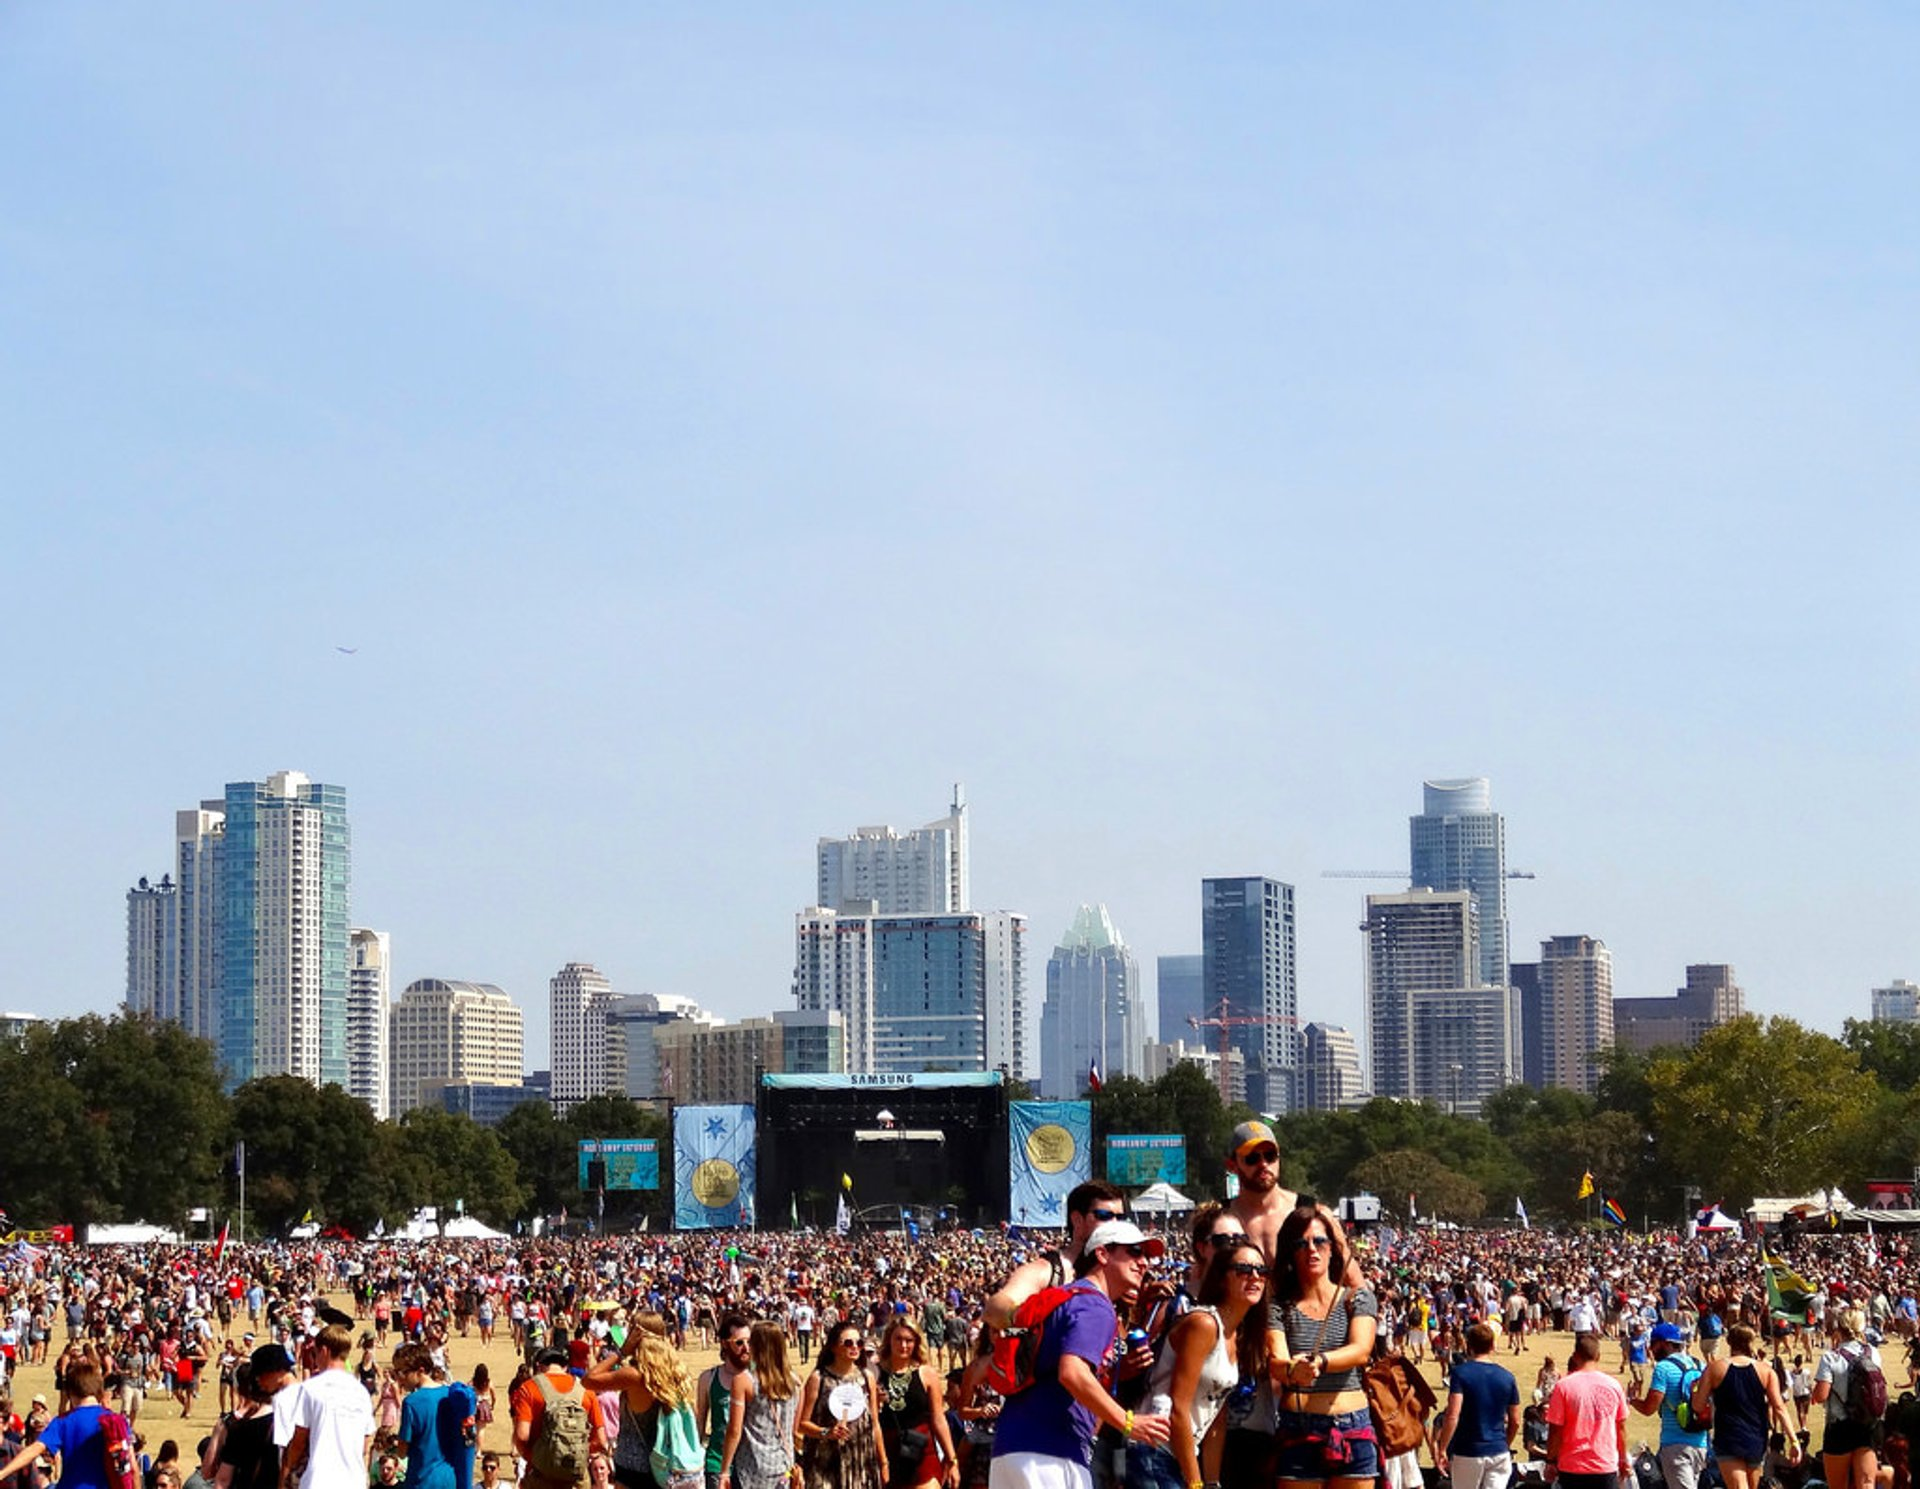 Austin City Limits Music Festival (ACL) in Texas - Best Season 2020